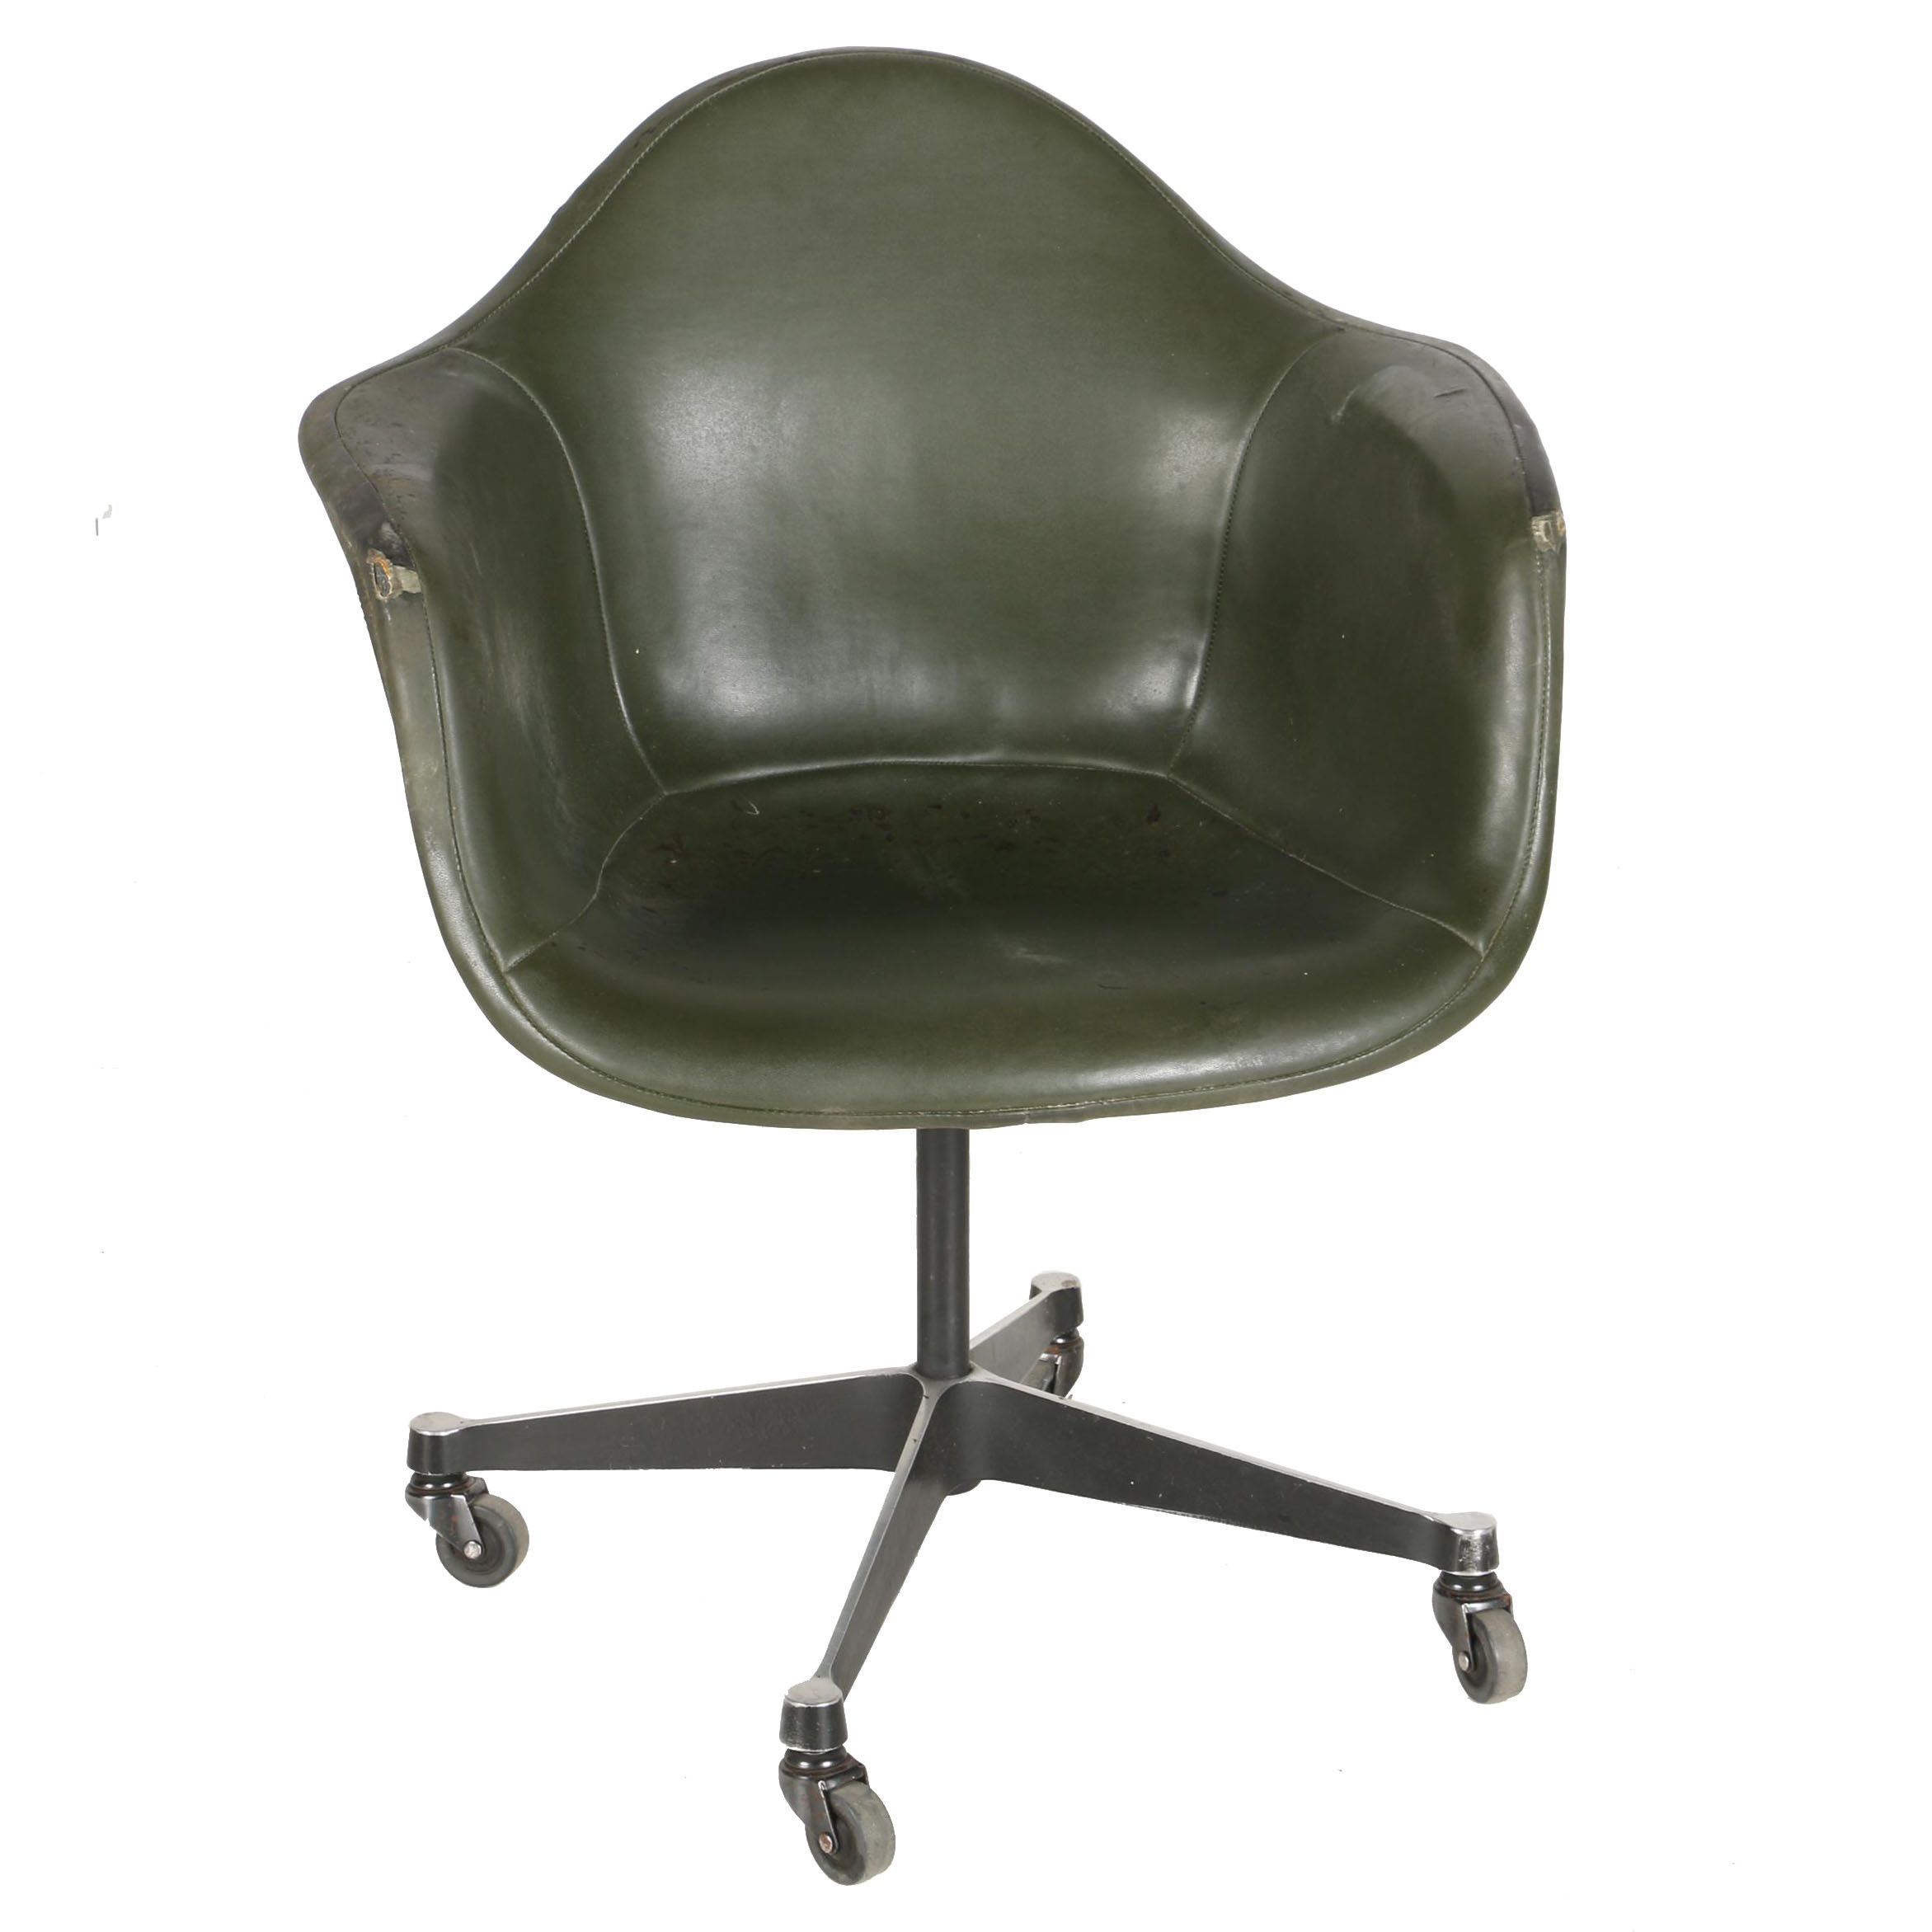 Mid Century Modern Swivel Shell Chair in the Style of Charles and Ray Eames